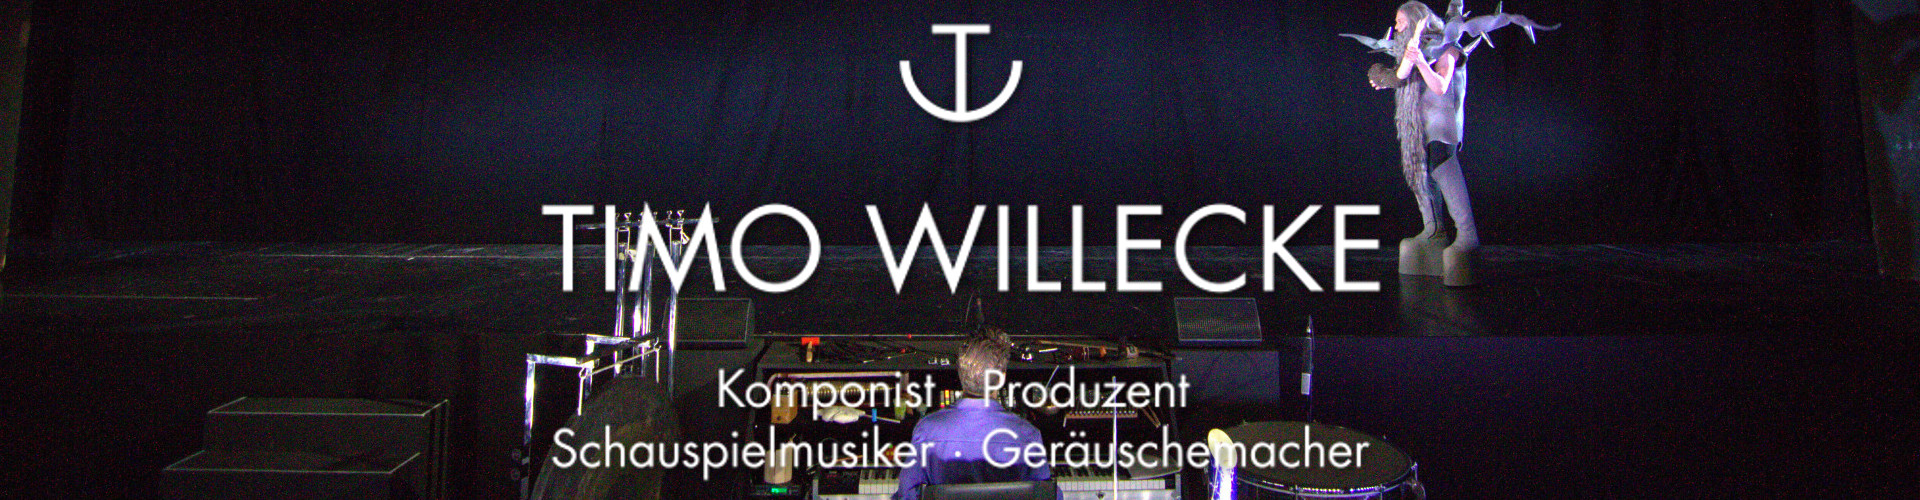 Timo Willecke